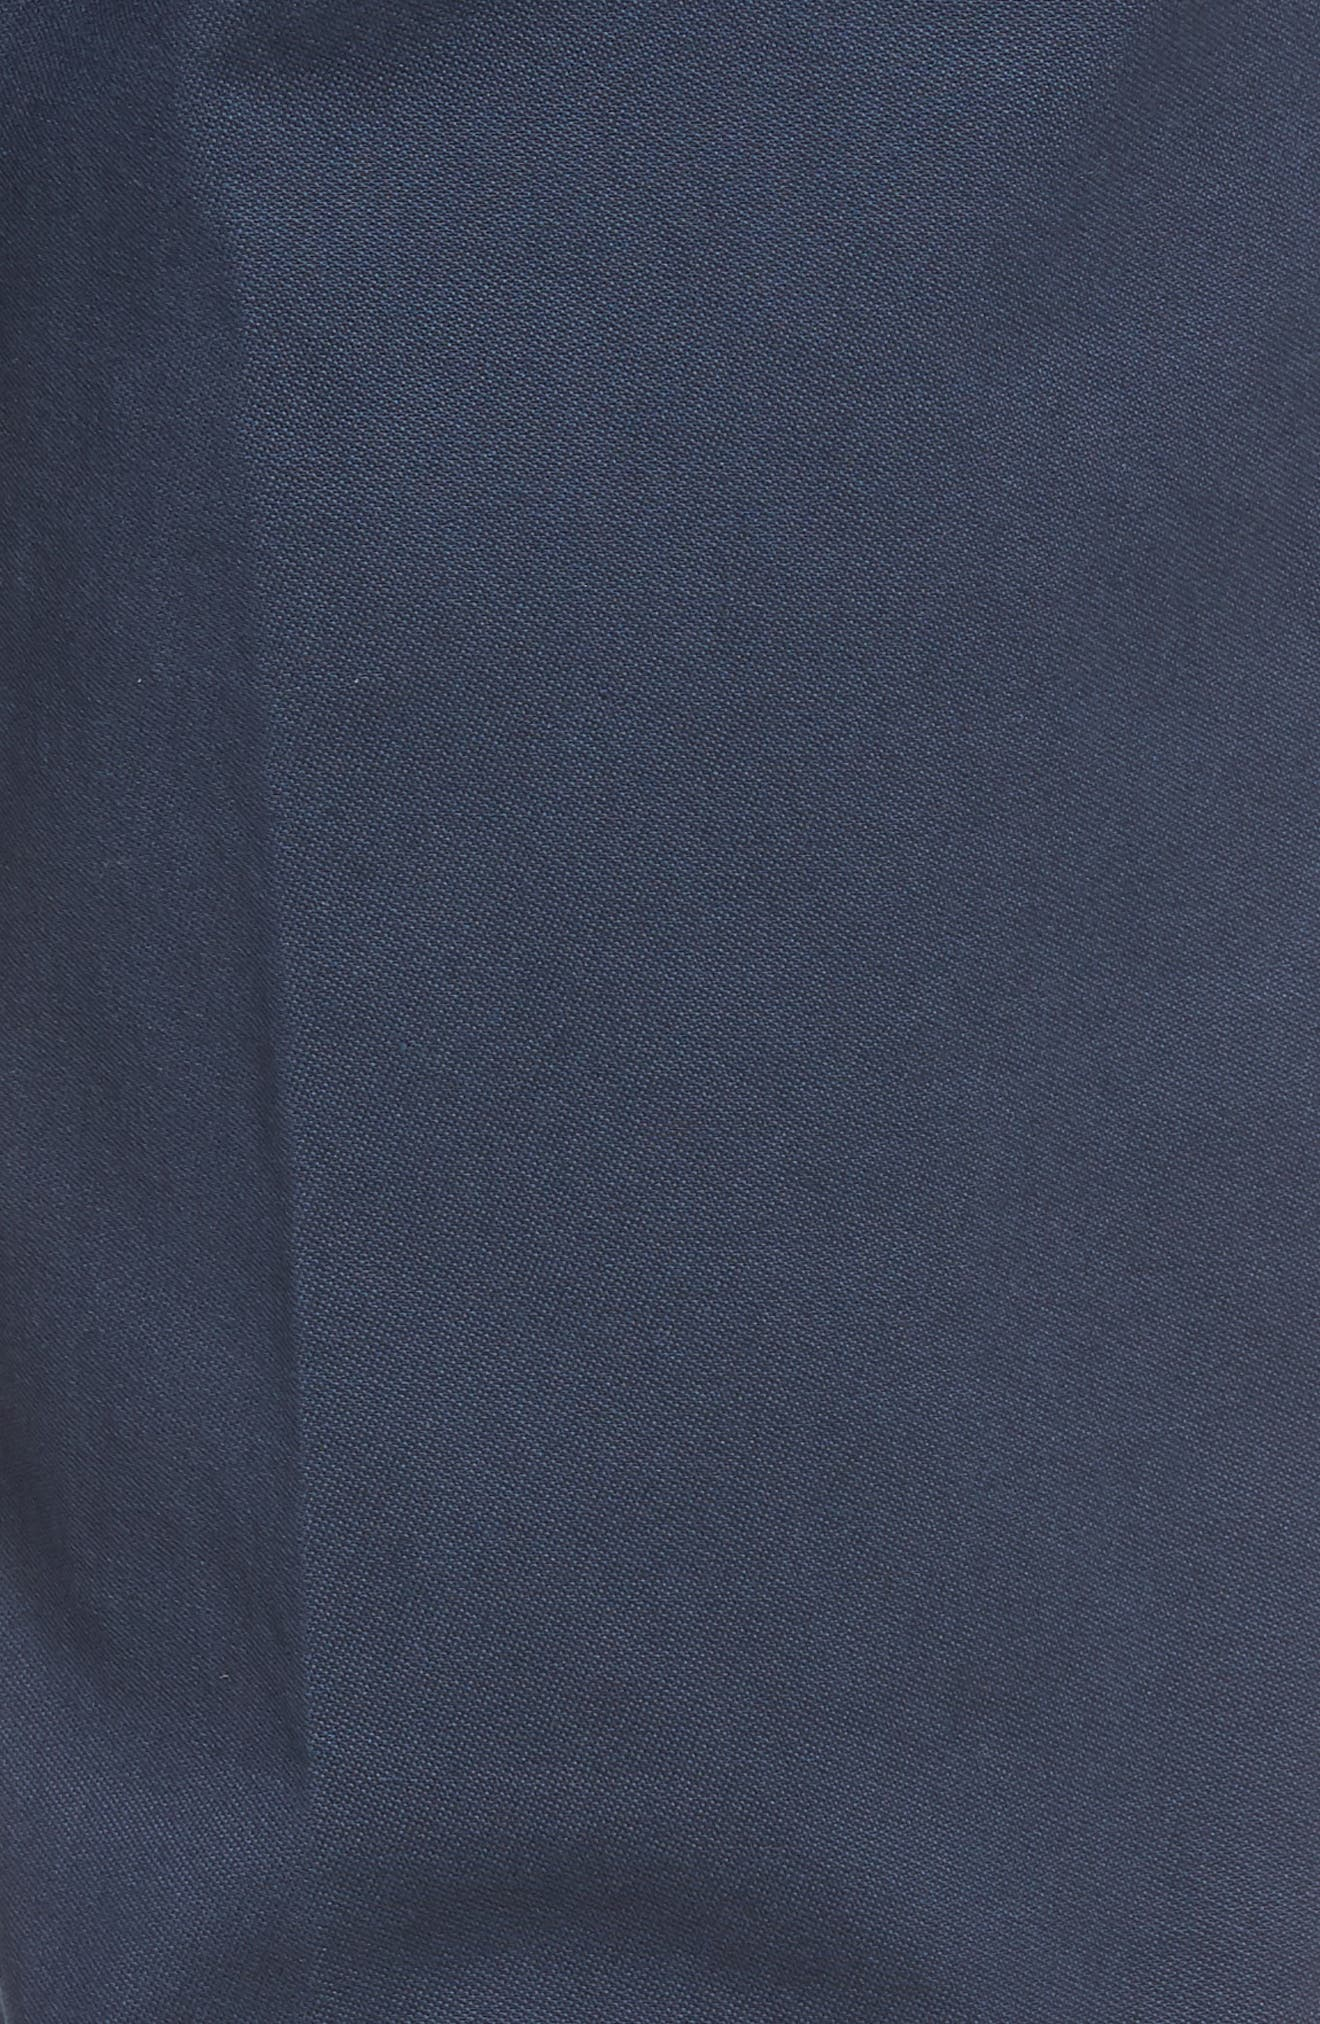 Slim Fit Stretch Twill Pants,                             Alternate thumbnail 3, color,                             Navy